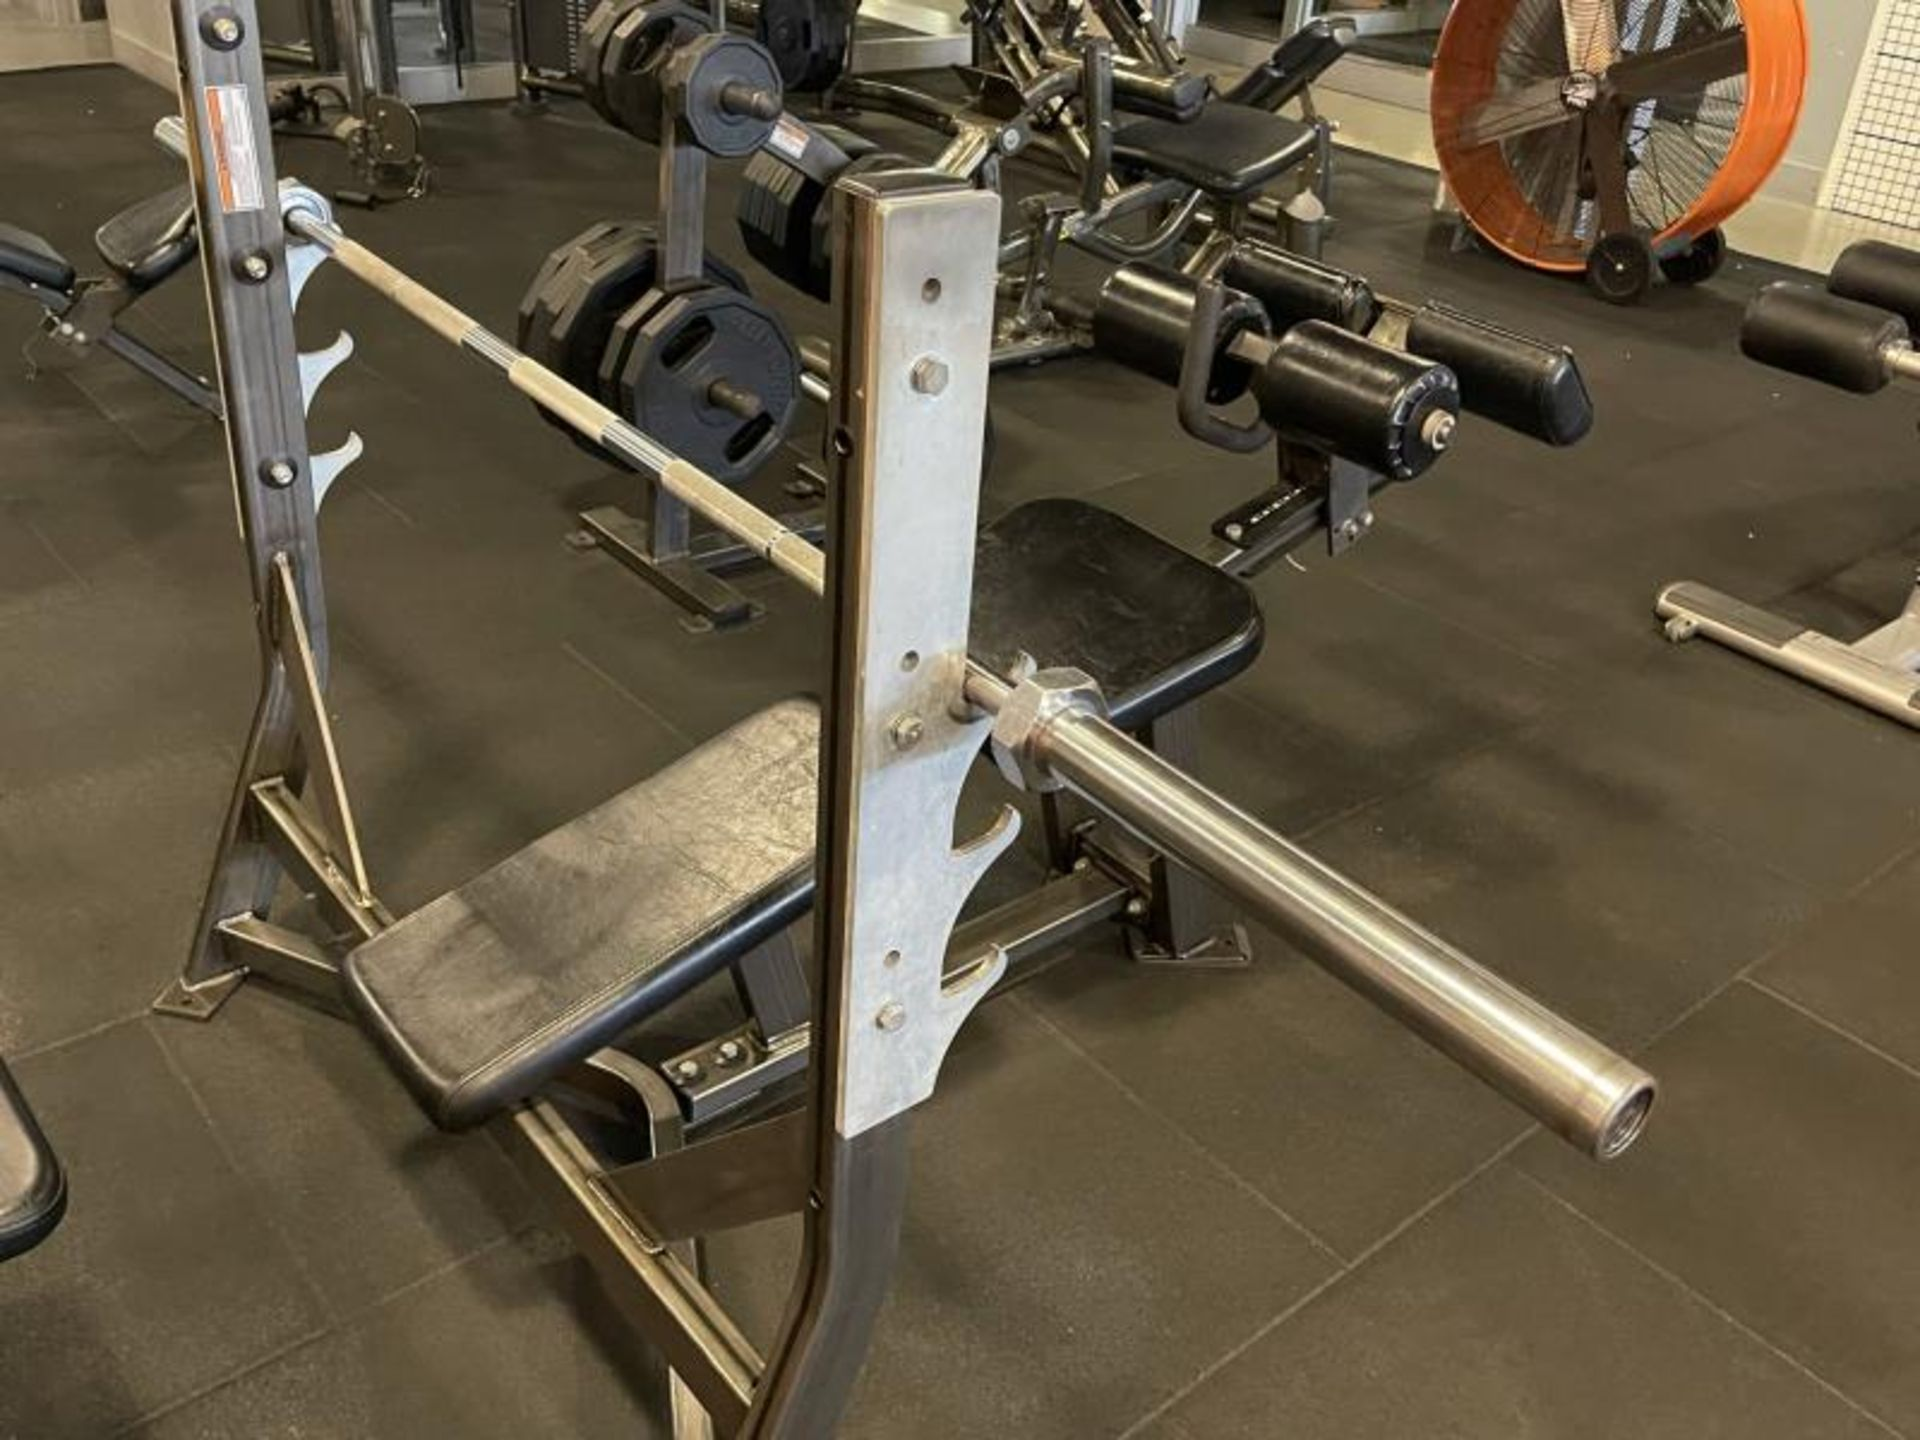 Hammer Strength Olympic Decline Bench with Bar ODB-A03 - Image 5 of 6